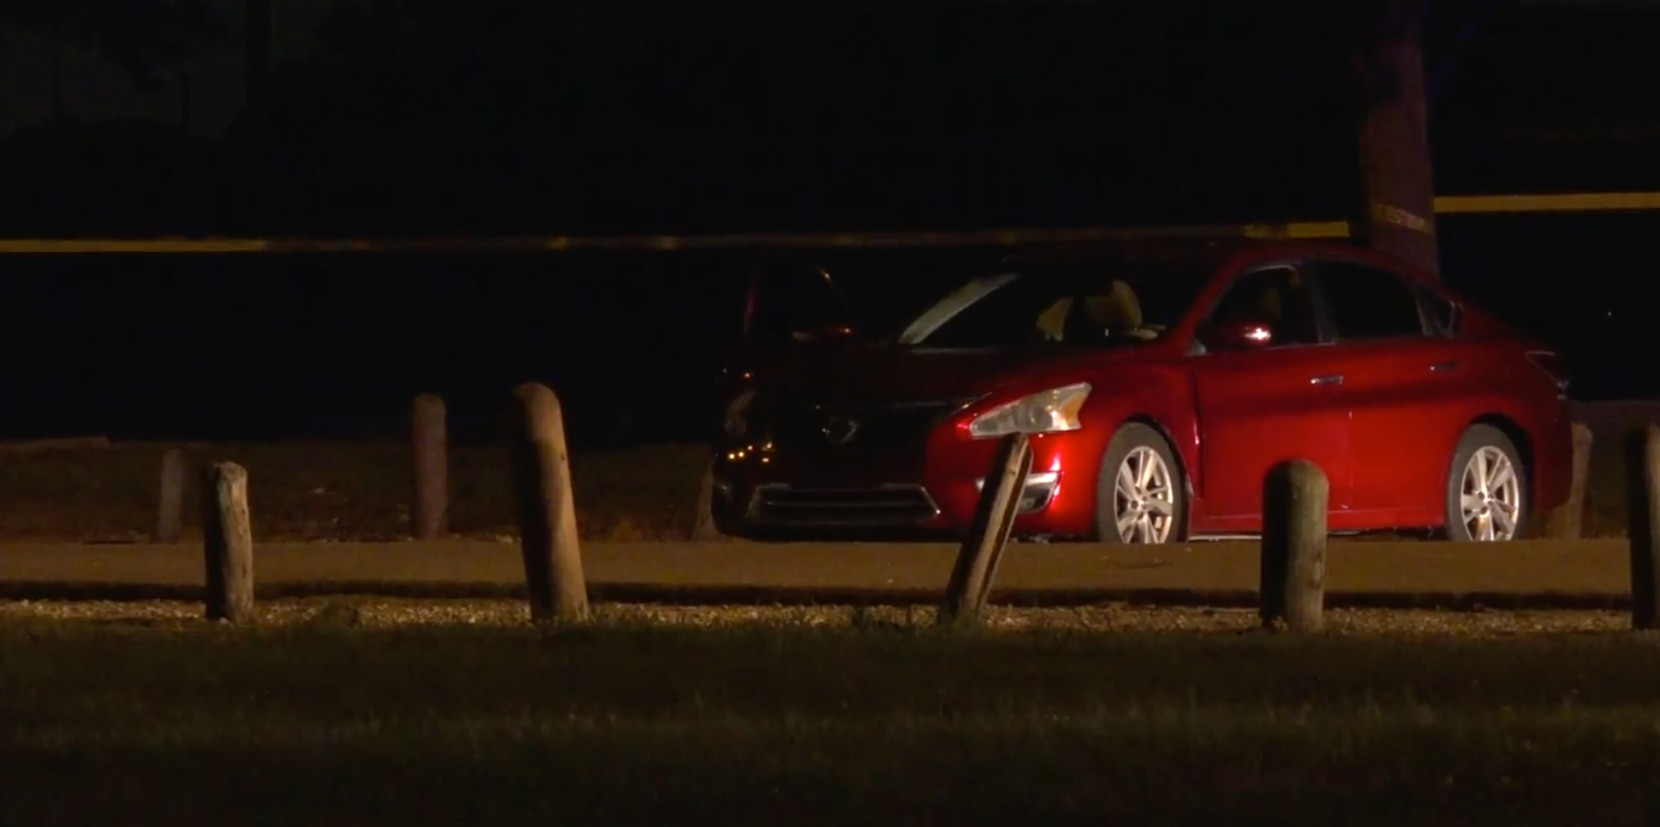 Dallas police responded to a shooting call at Kiest Park on Friday night.